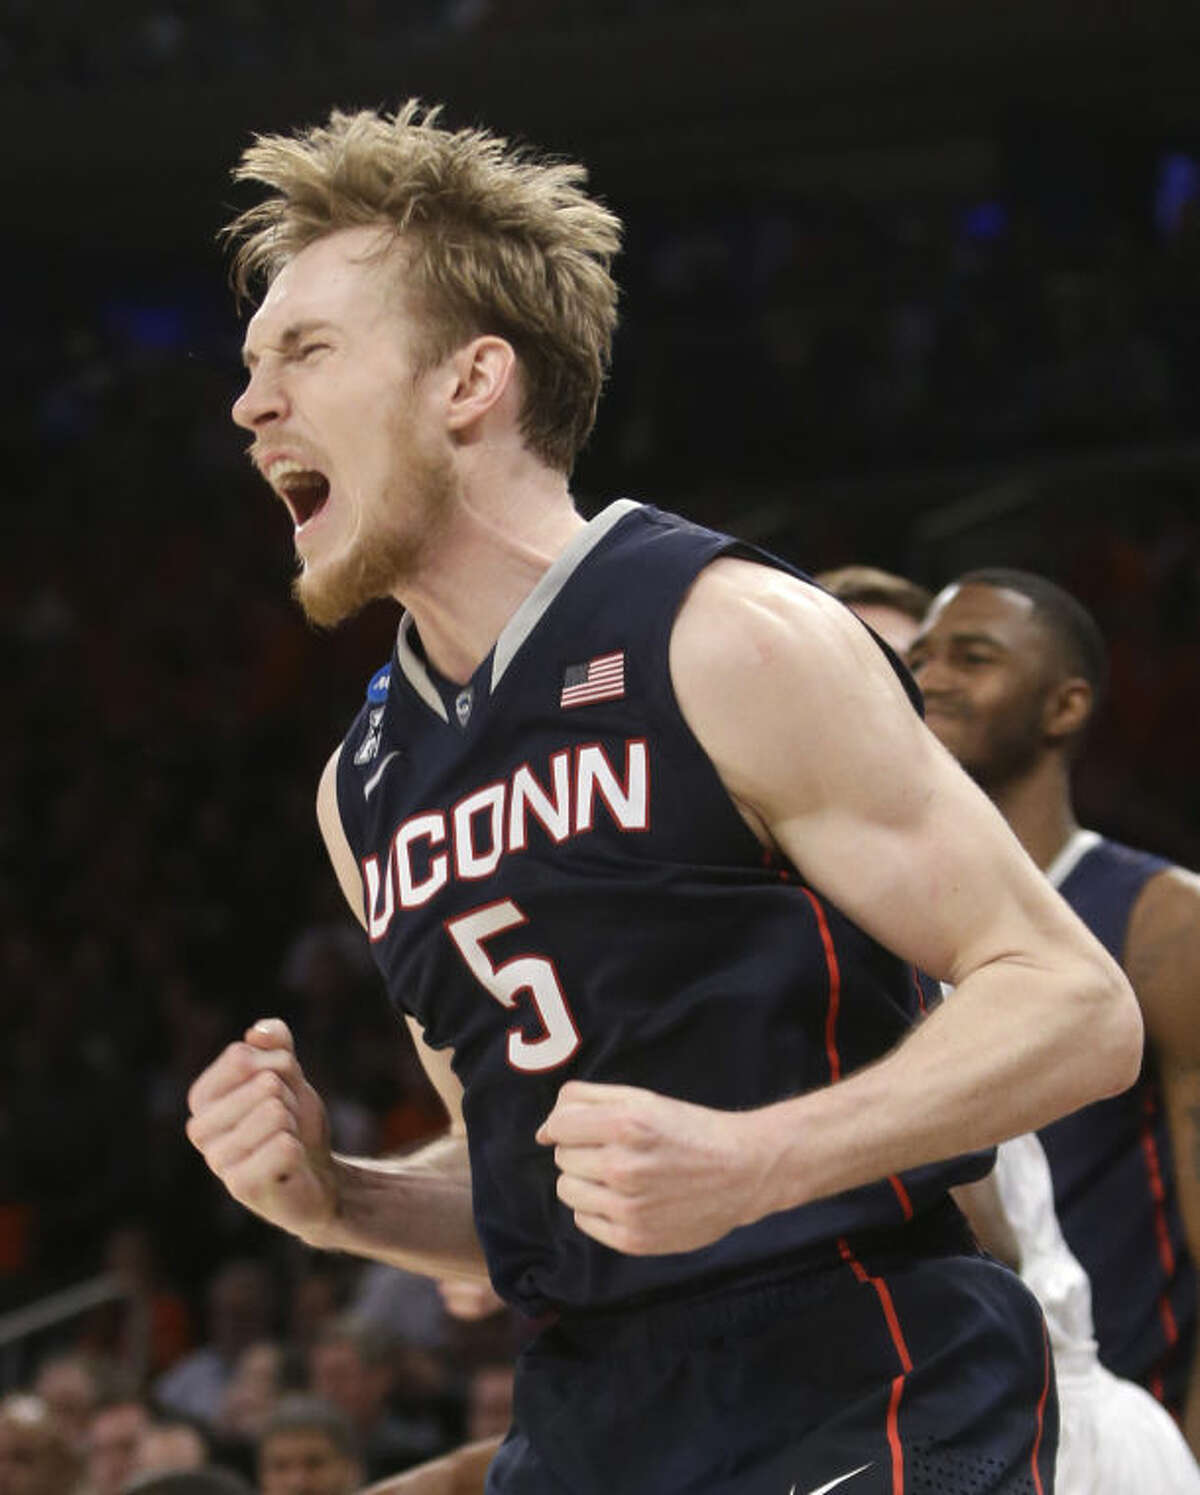 Connecticut's Niels Giffey exults during the second half in a regional semifinal against Iowa State in the NCAA men's college basketball tournament Friday, March 28, 2014, in New York. Connecticut won 81-76. (AP Photo/Frank Franklin II)